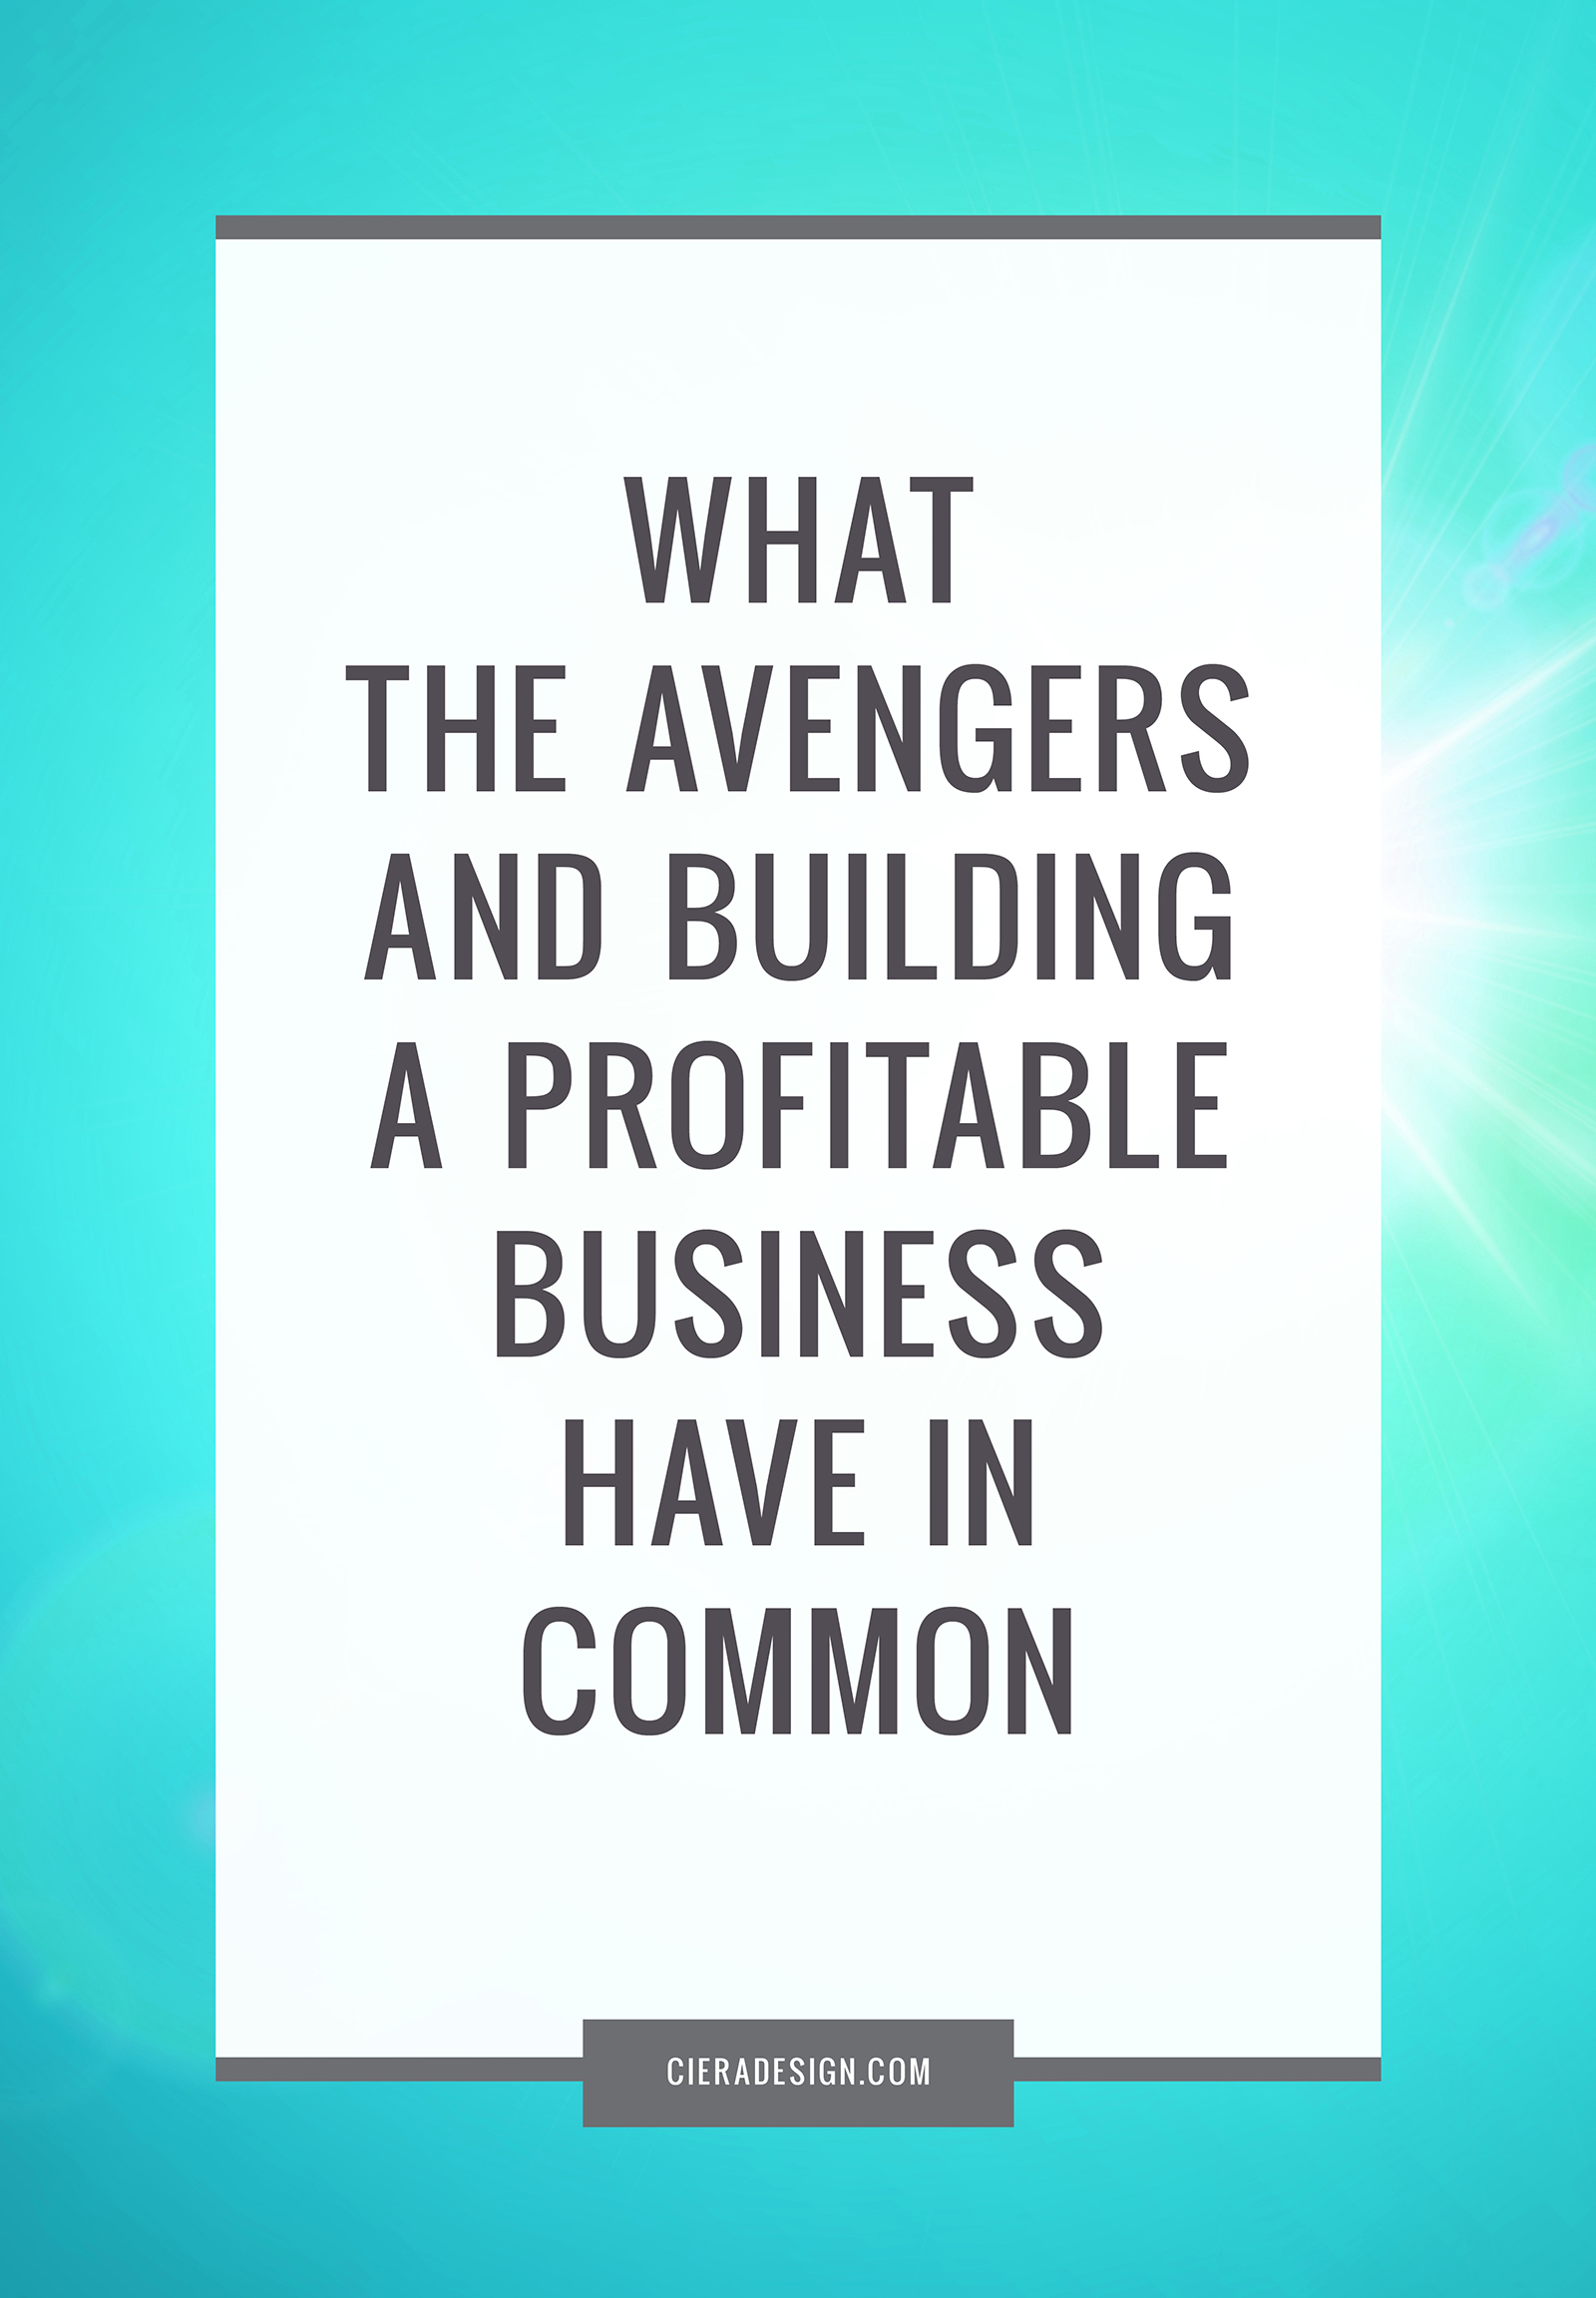 Learn what The Avengers and building a profitable business have in common